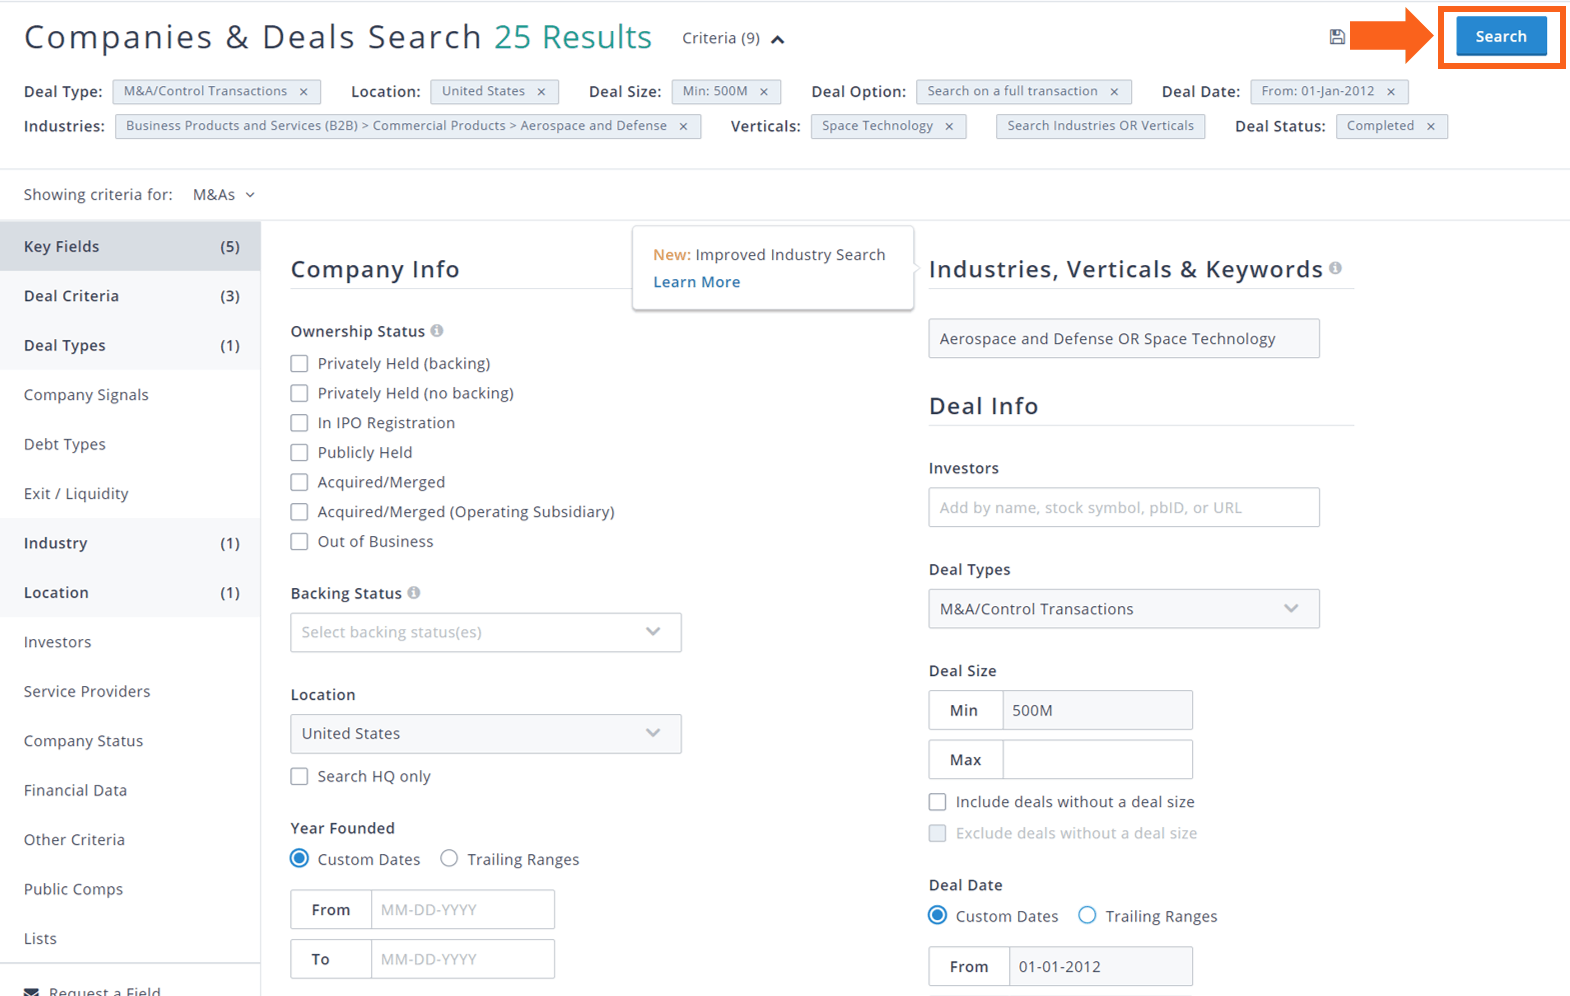 PitchBook companies and deals complete search